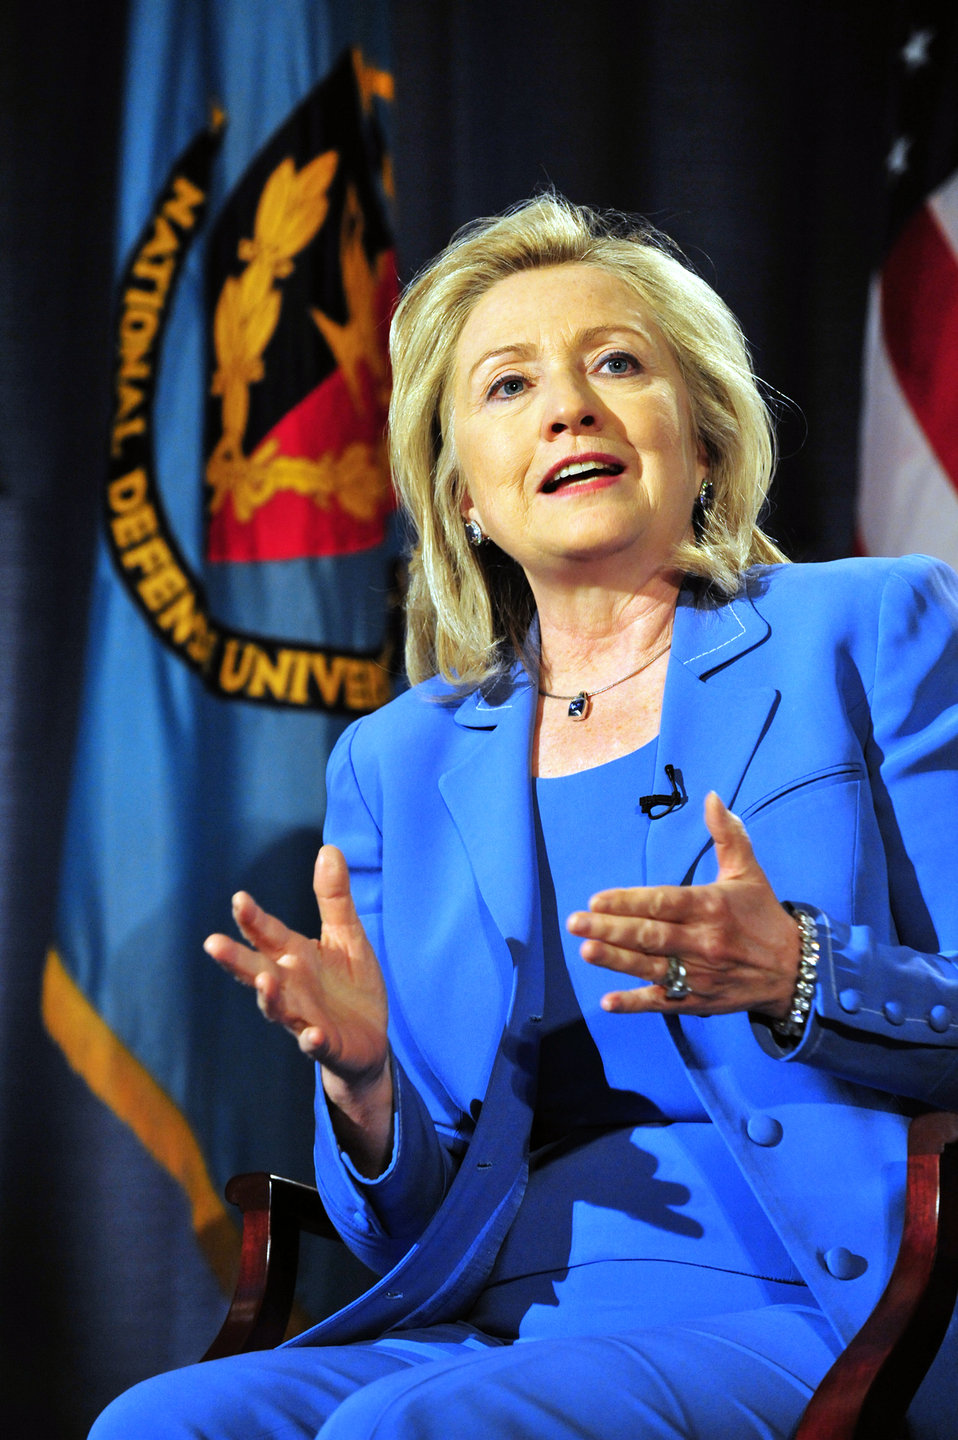 National Defense University Hosts a Conversation With Secretaries Clinton and Panetta